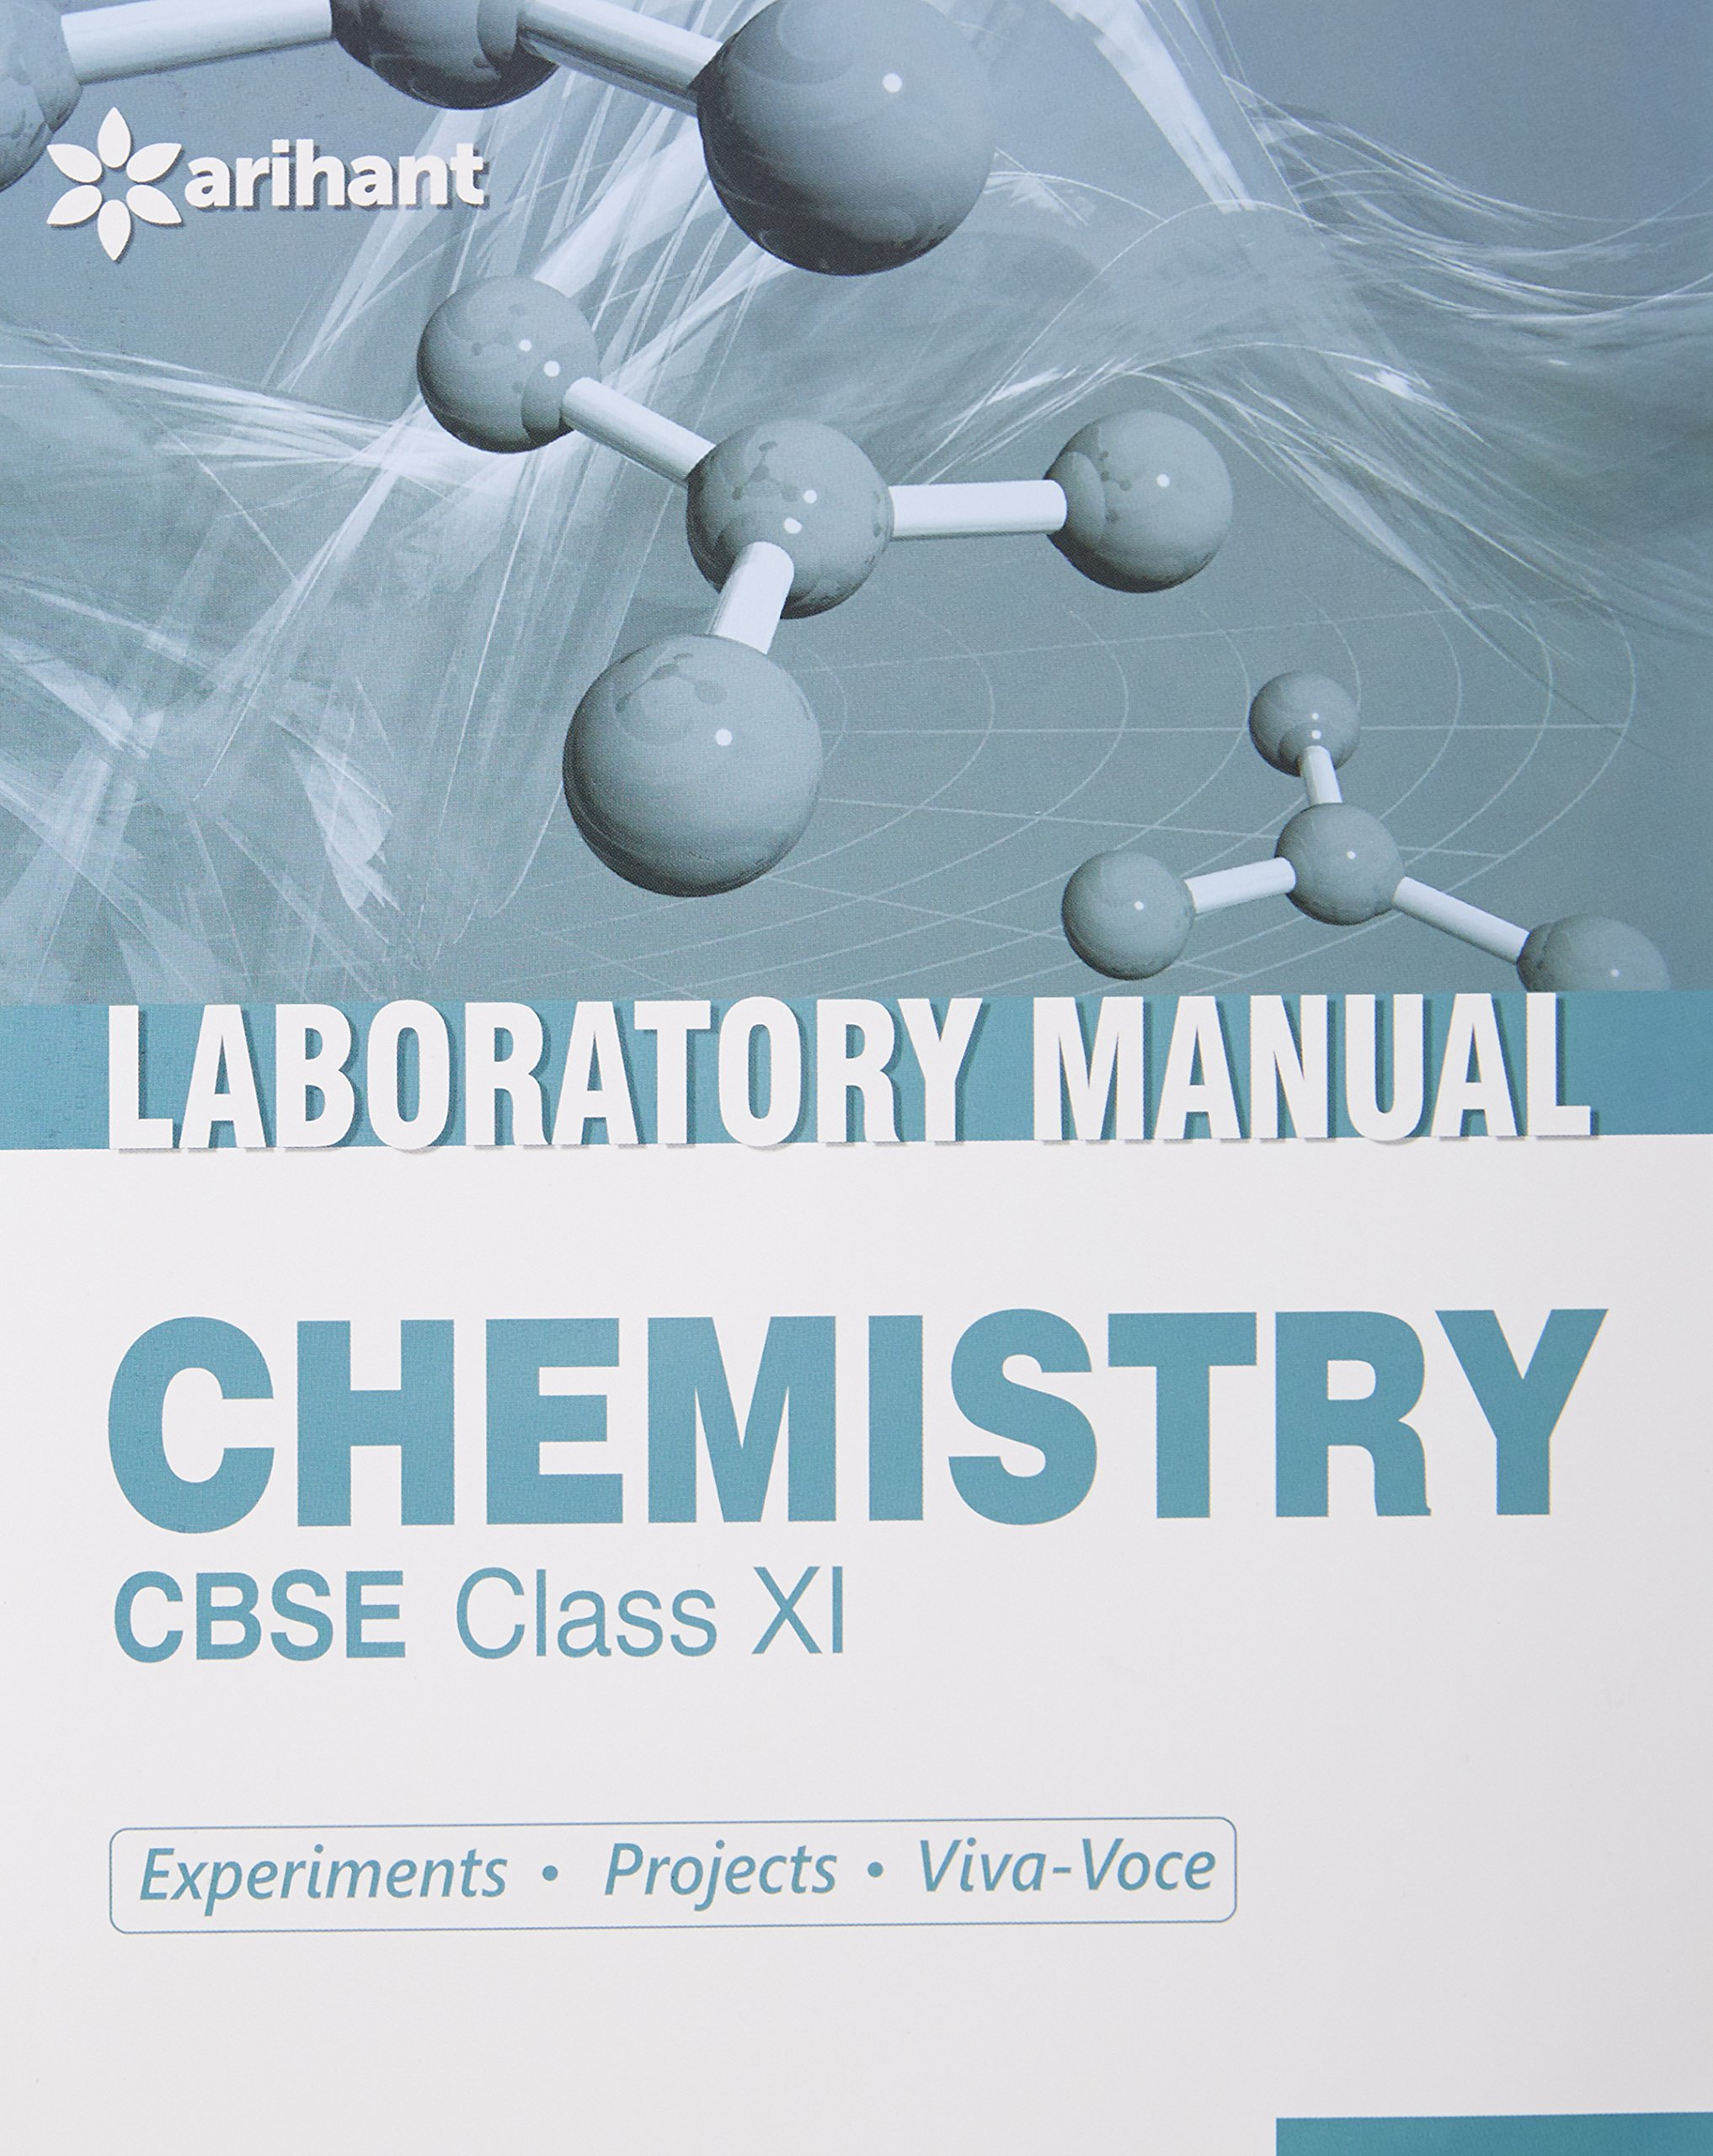 CBSE Laboratory Manual Chemistry Class 11th Experiments\Projects\Viva-Voce:  Amazon.in: Arihant Experts: Books